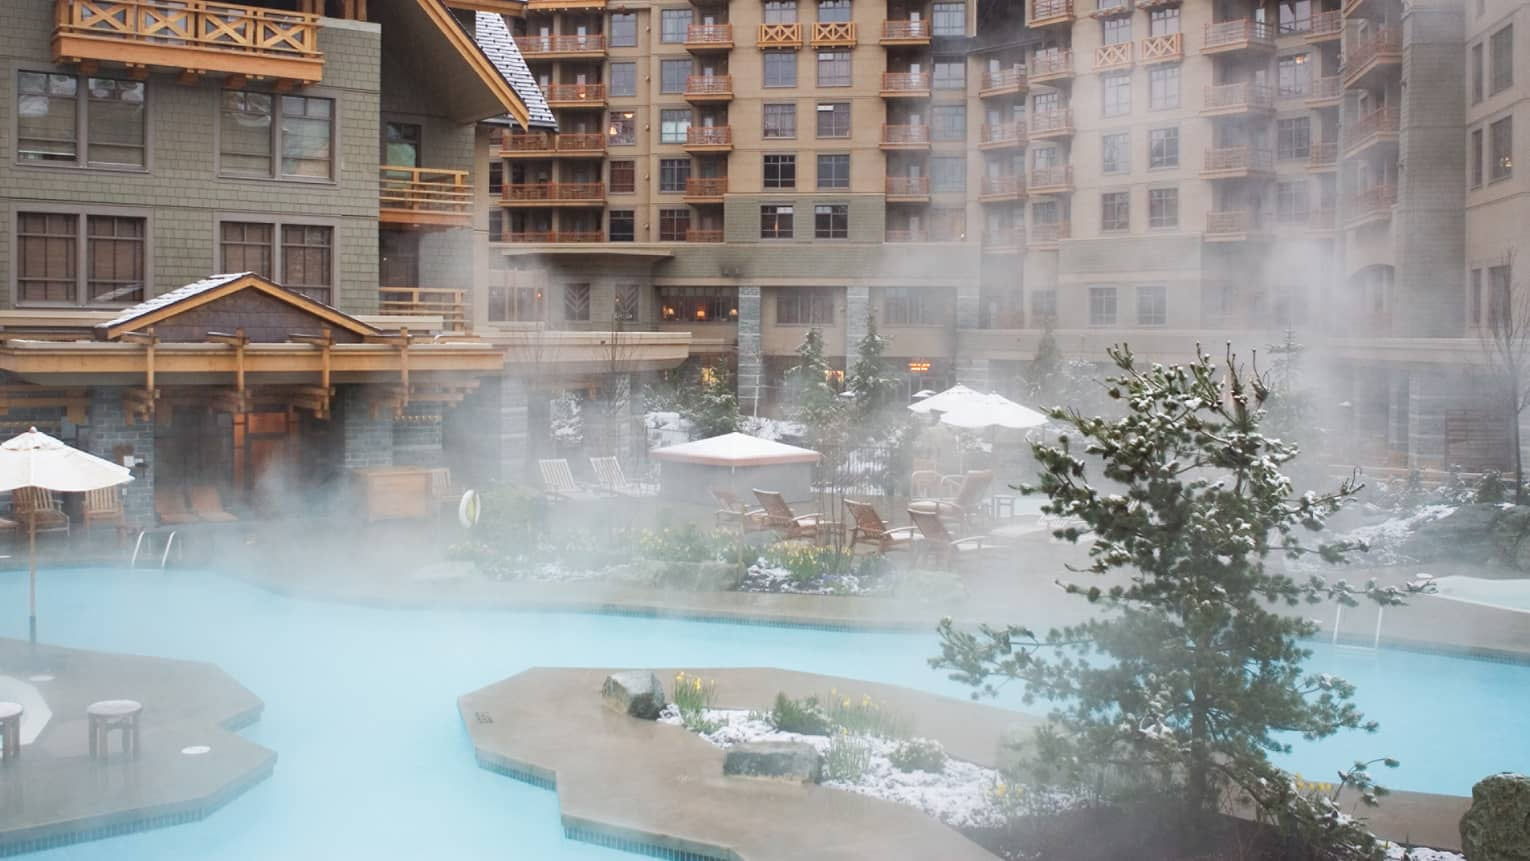 Steam rises from outdoor whirlpools over patio with light-snow covered chairs, umbrellas, trees